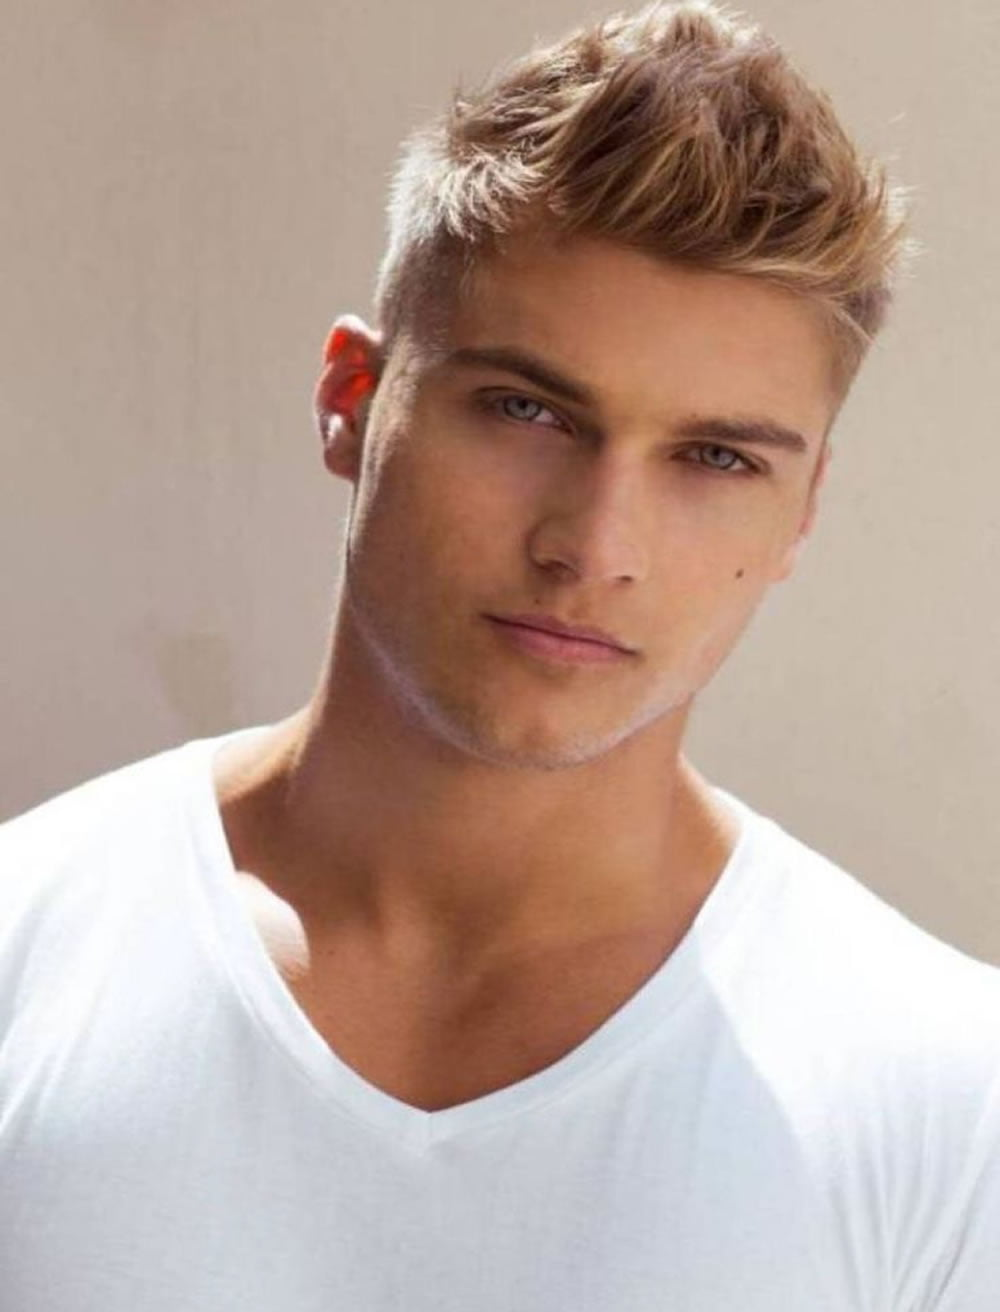 23 Cool Short Haircuts For Men 2019 Easy Short Hairstyles